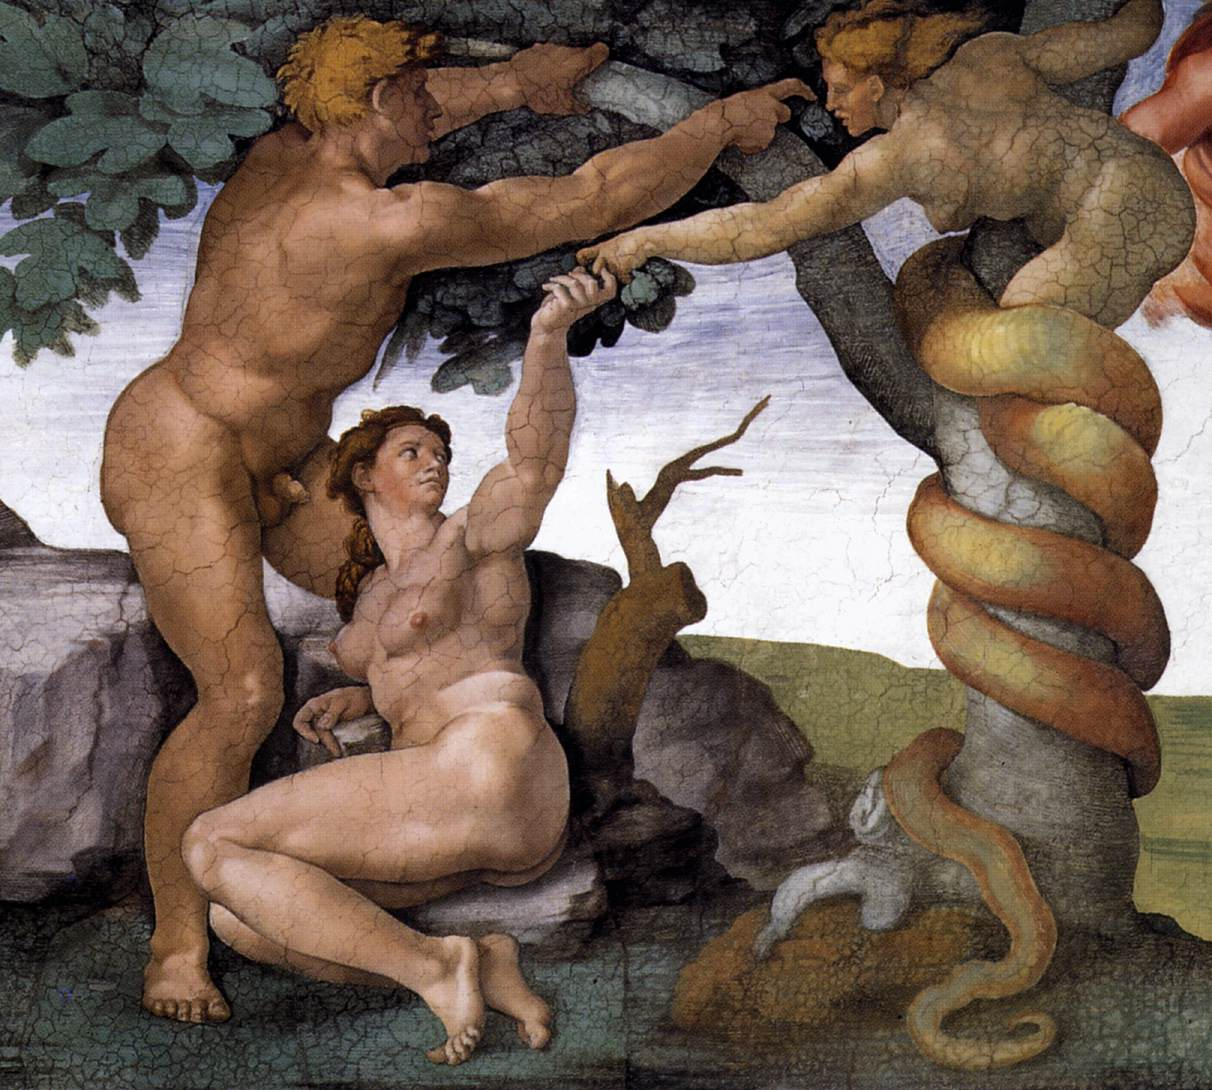 https://cont.ws/uploads/pic/2017/12/Michelangelo%2C_Fall_and_Expulsion_from_Garden_of_Eden_04.jpg